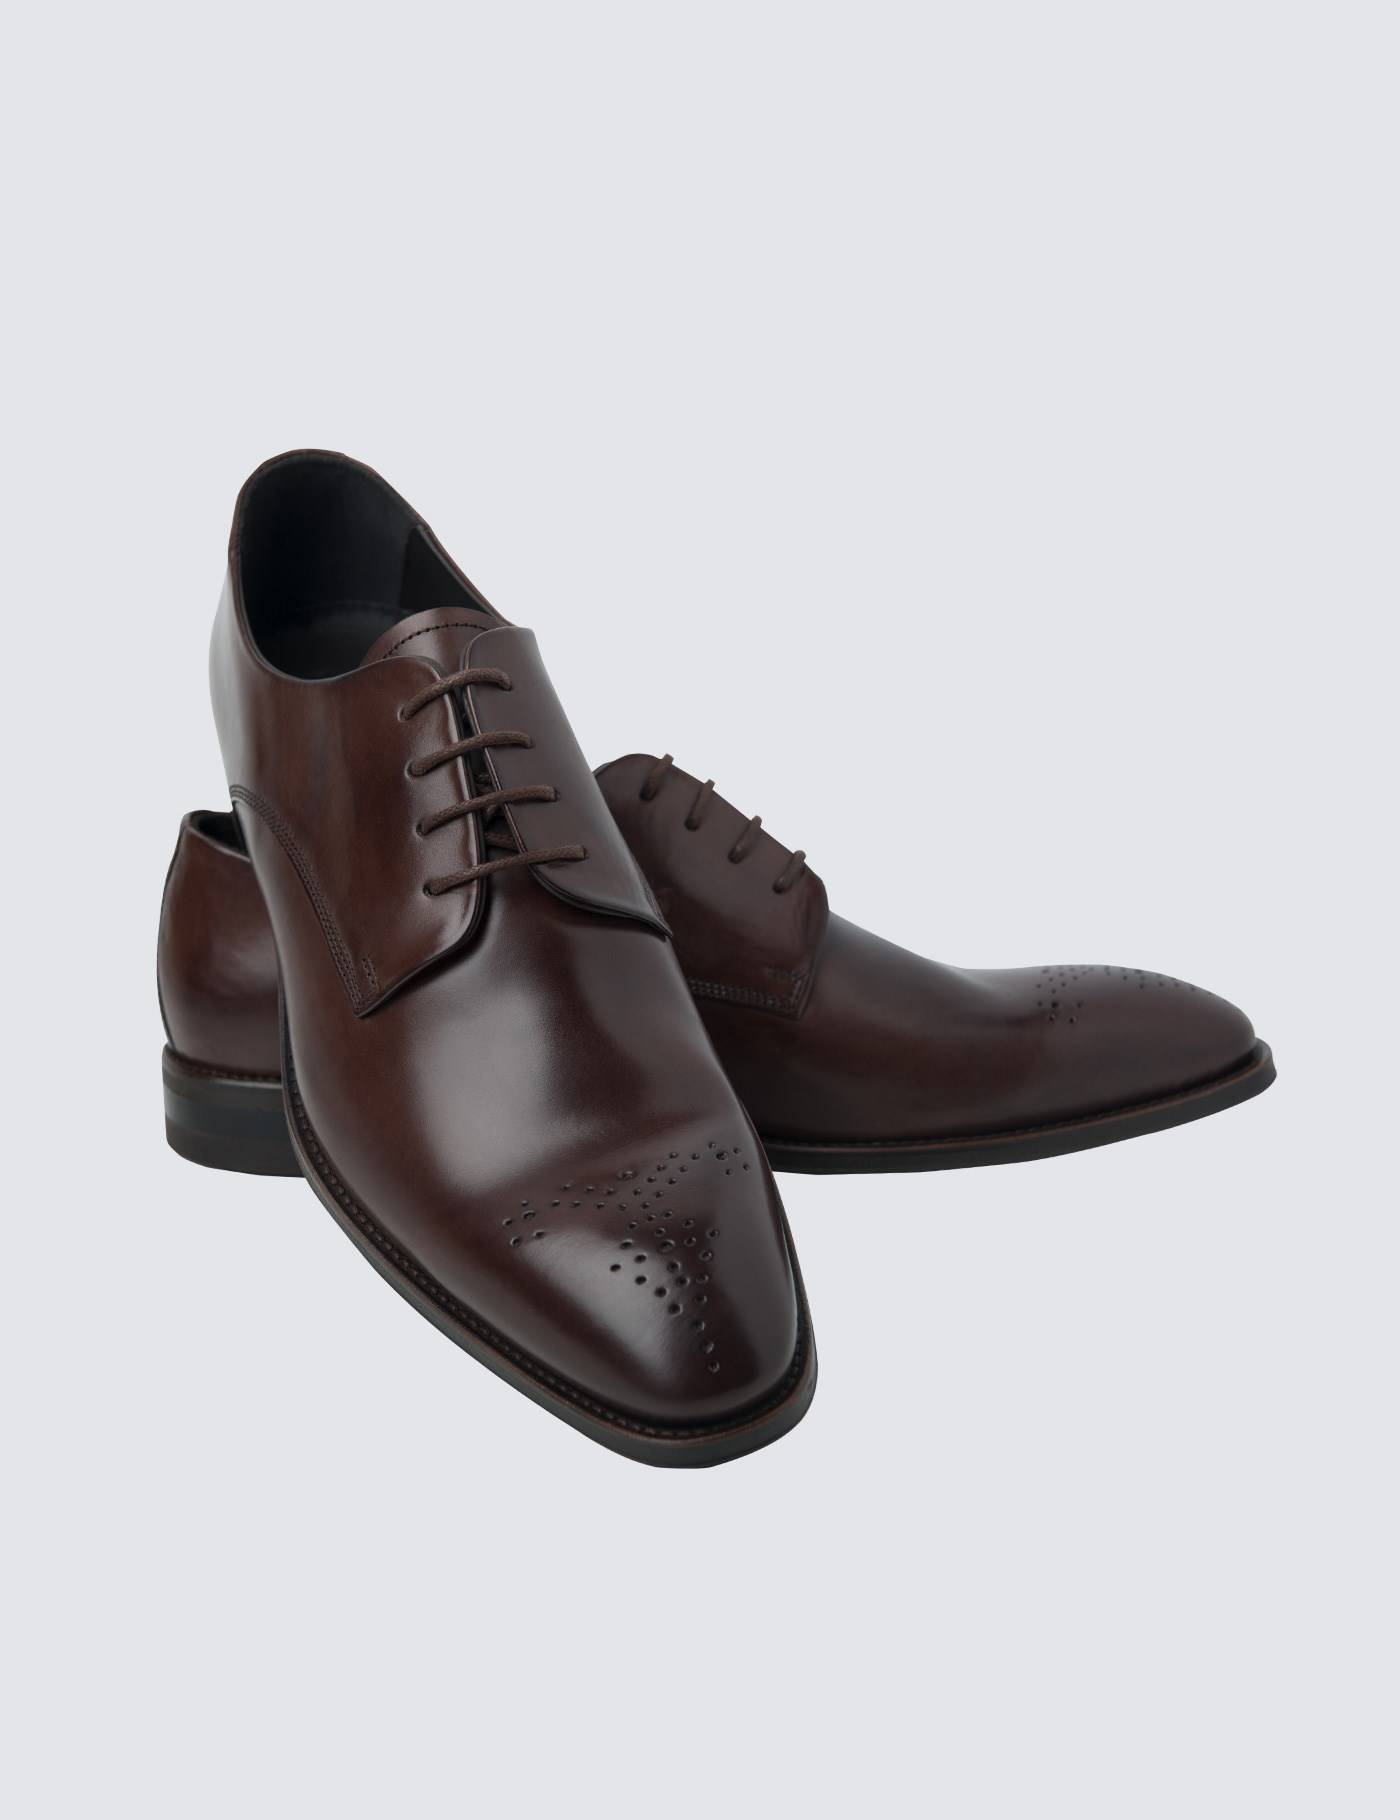 Hawes & Curtis Men's Leather Wholecut Shoes in Brown Size 9.5 Hawes & Curtis